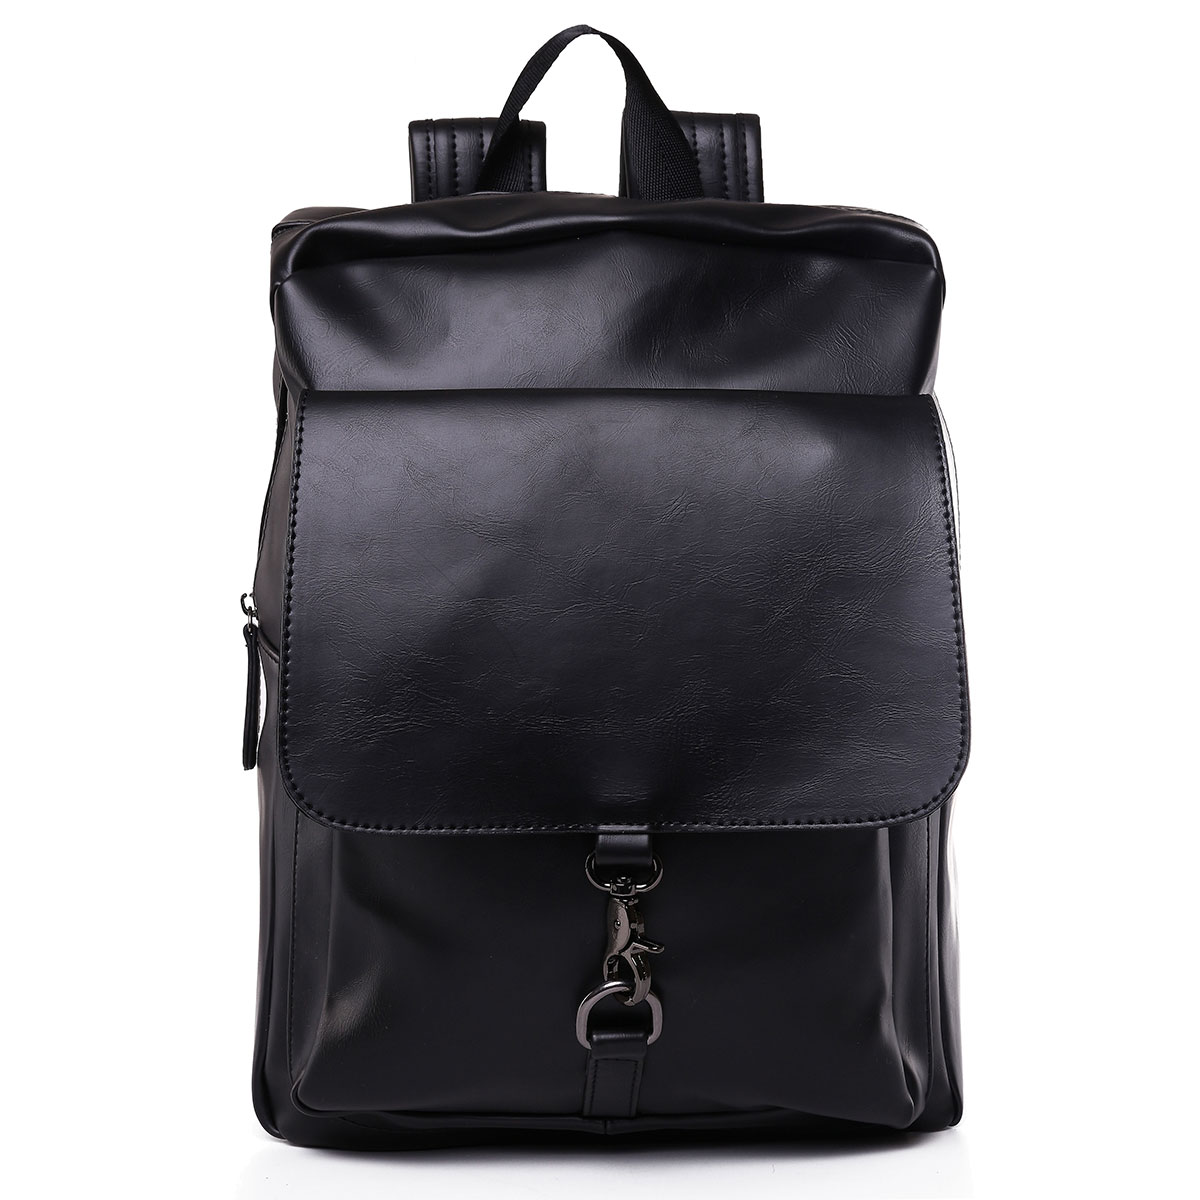 Fashion Men Women PU Leather Backpack School Bag Casual Travel Bookbag Black Youth Top Handle Backpack Back For School Mochila